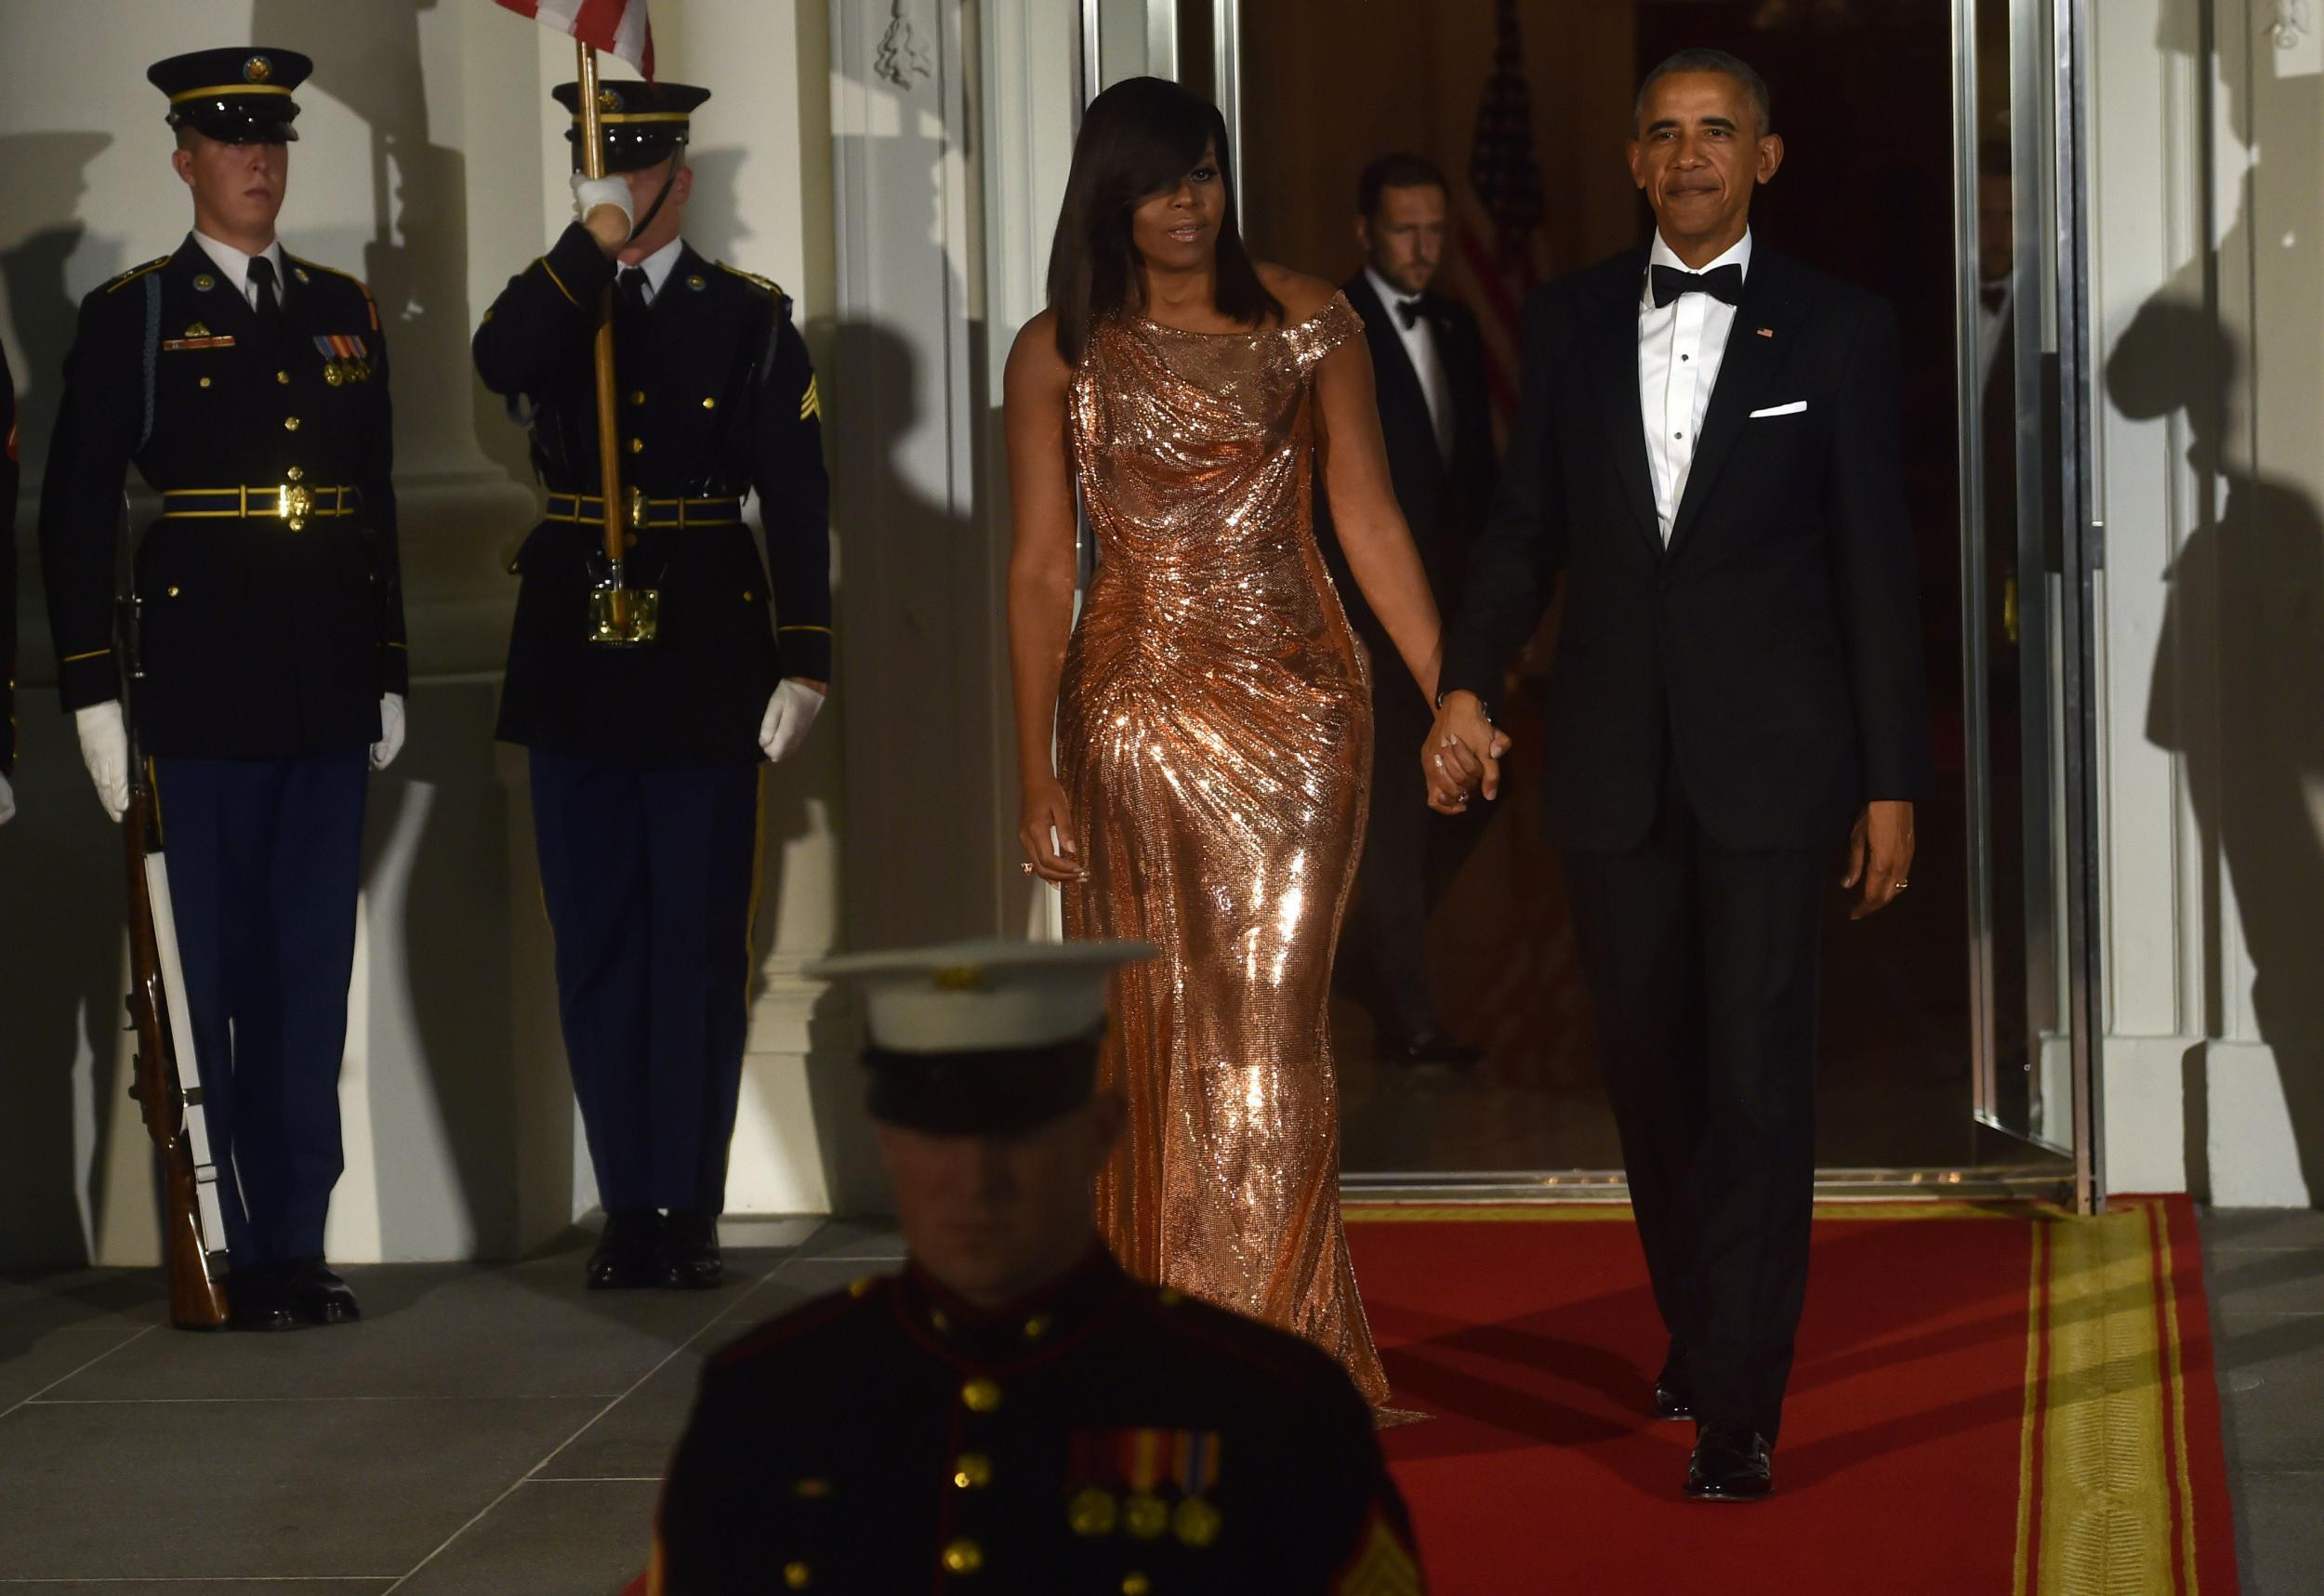 Michelle Obama State Dinner 2016 Dress  The story behind Michelle Obama s beautiful final state